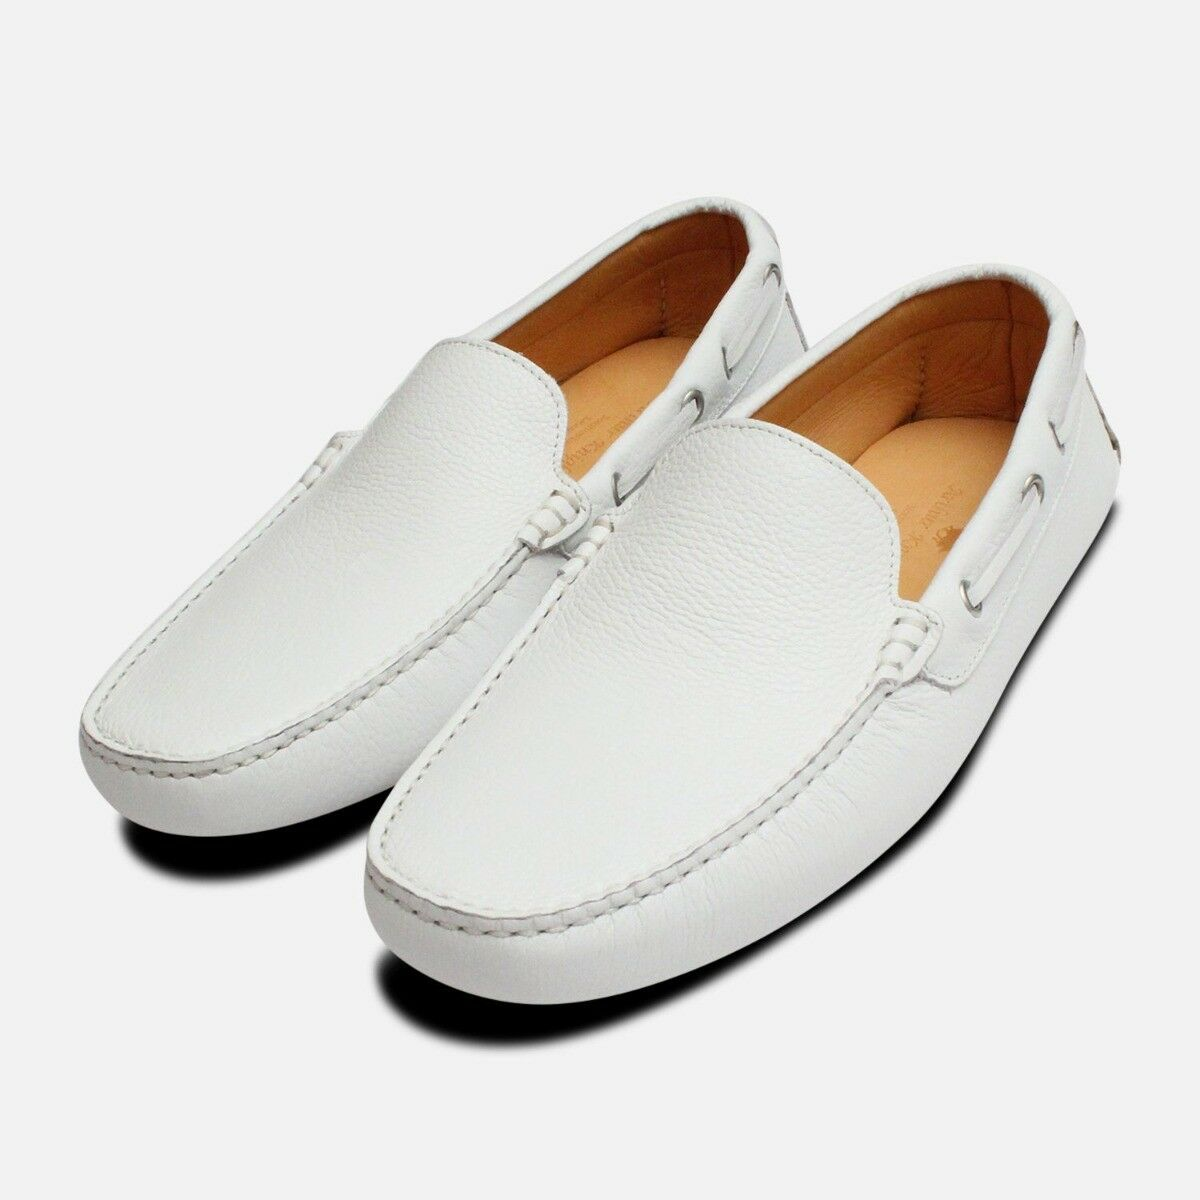 White Leather Mens Driving shoes Moccasins